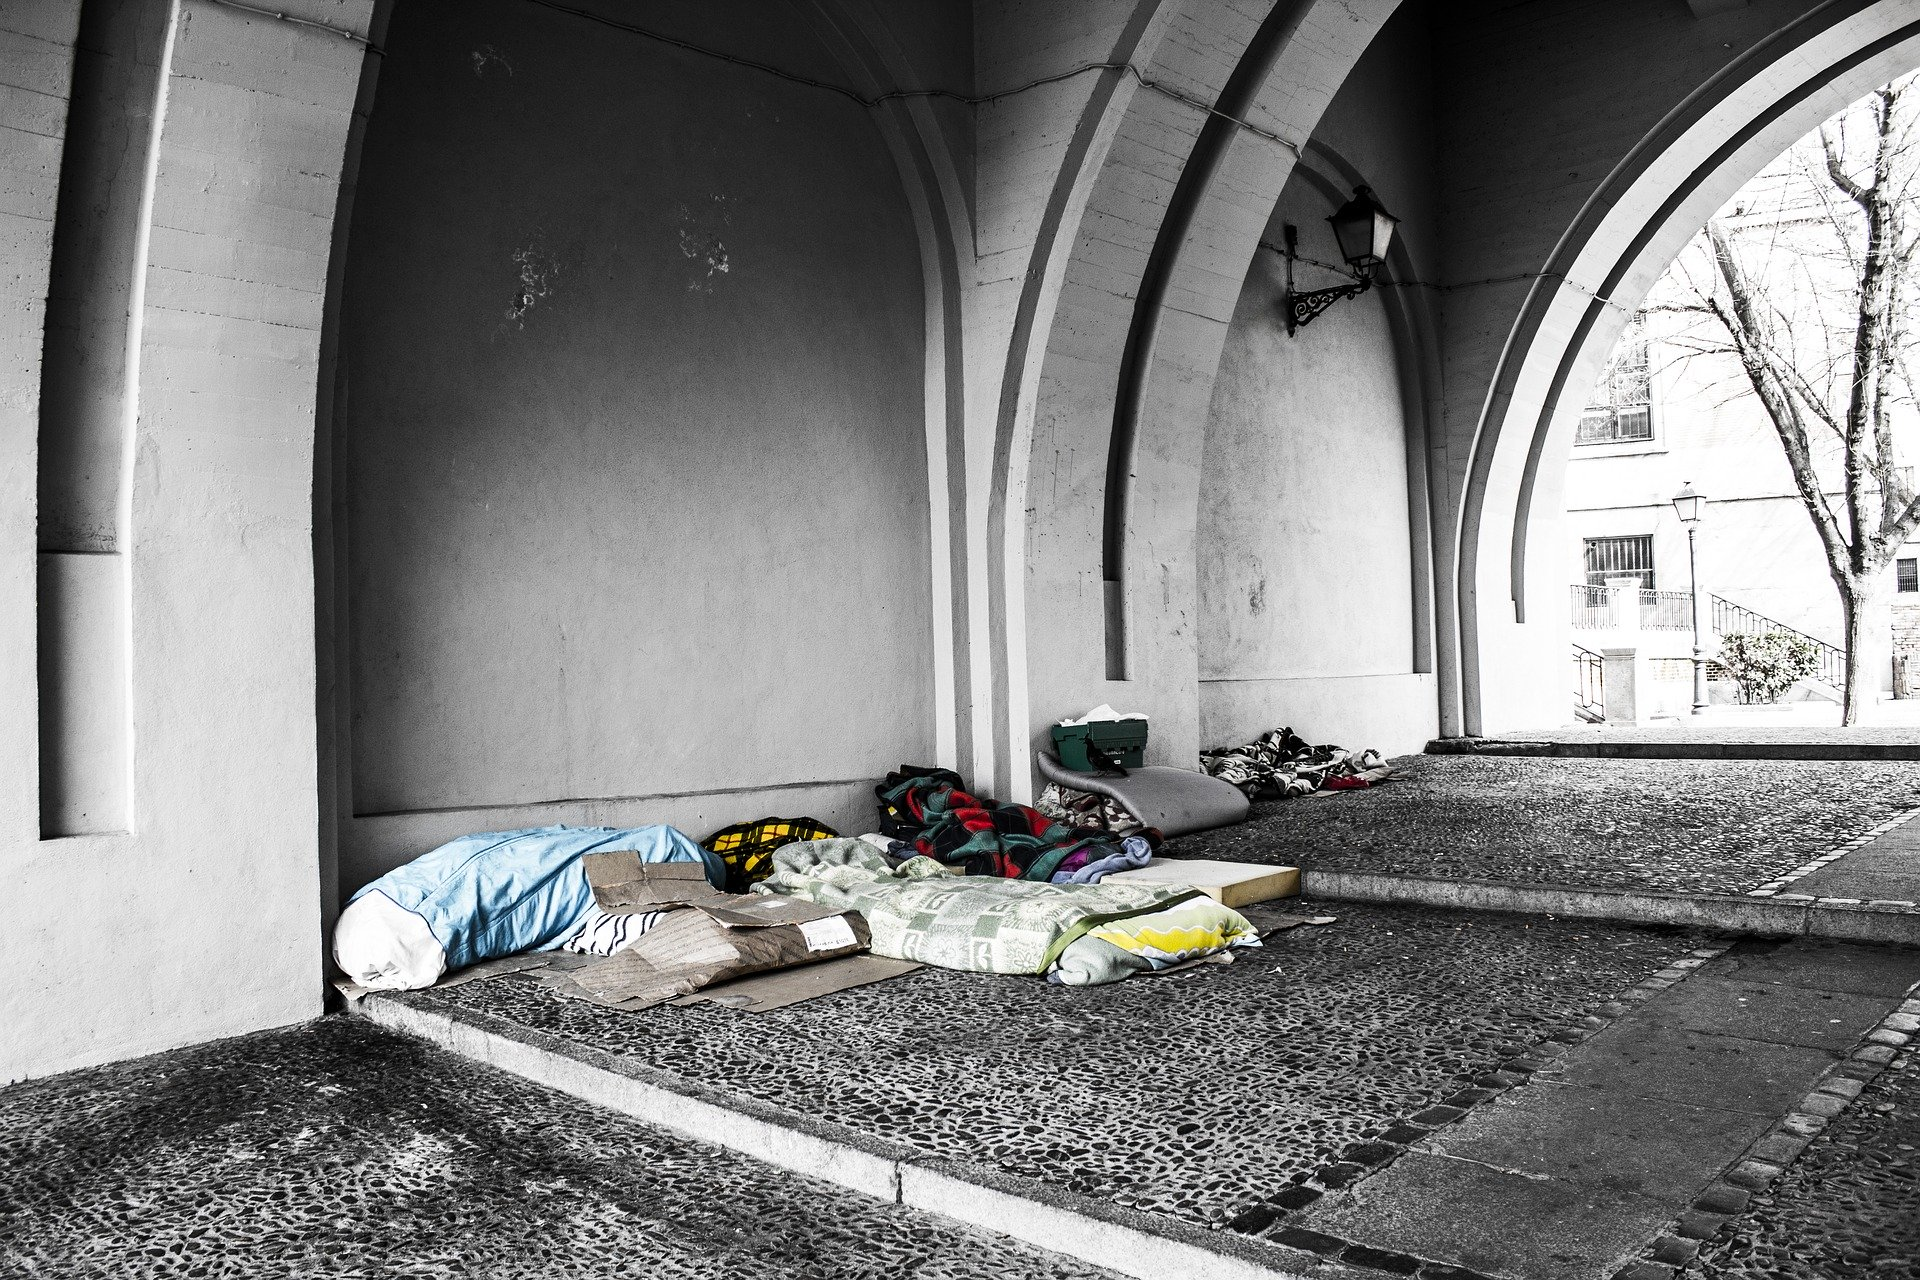 Student Homelessness at an All-Time High